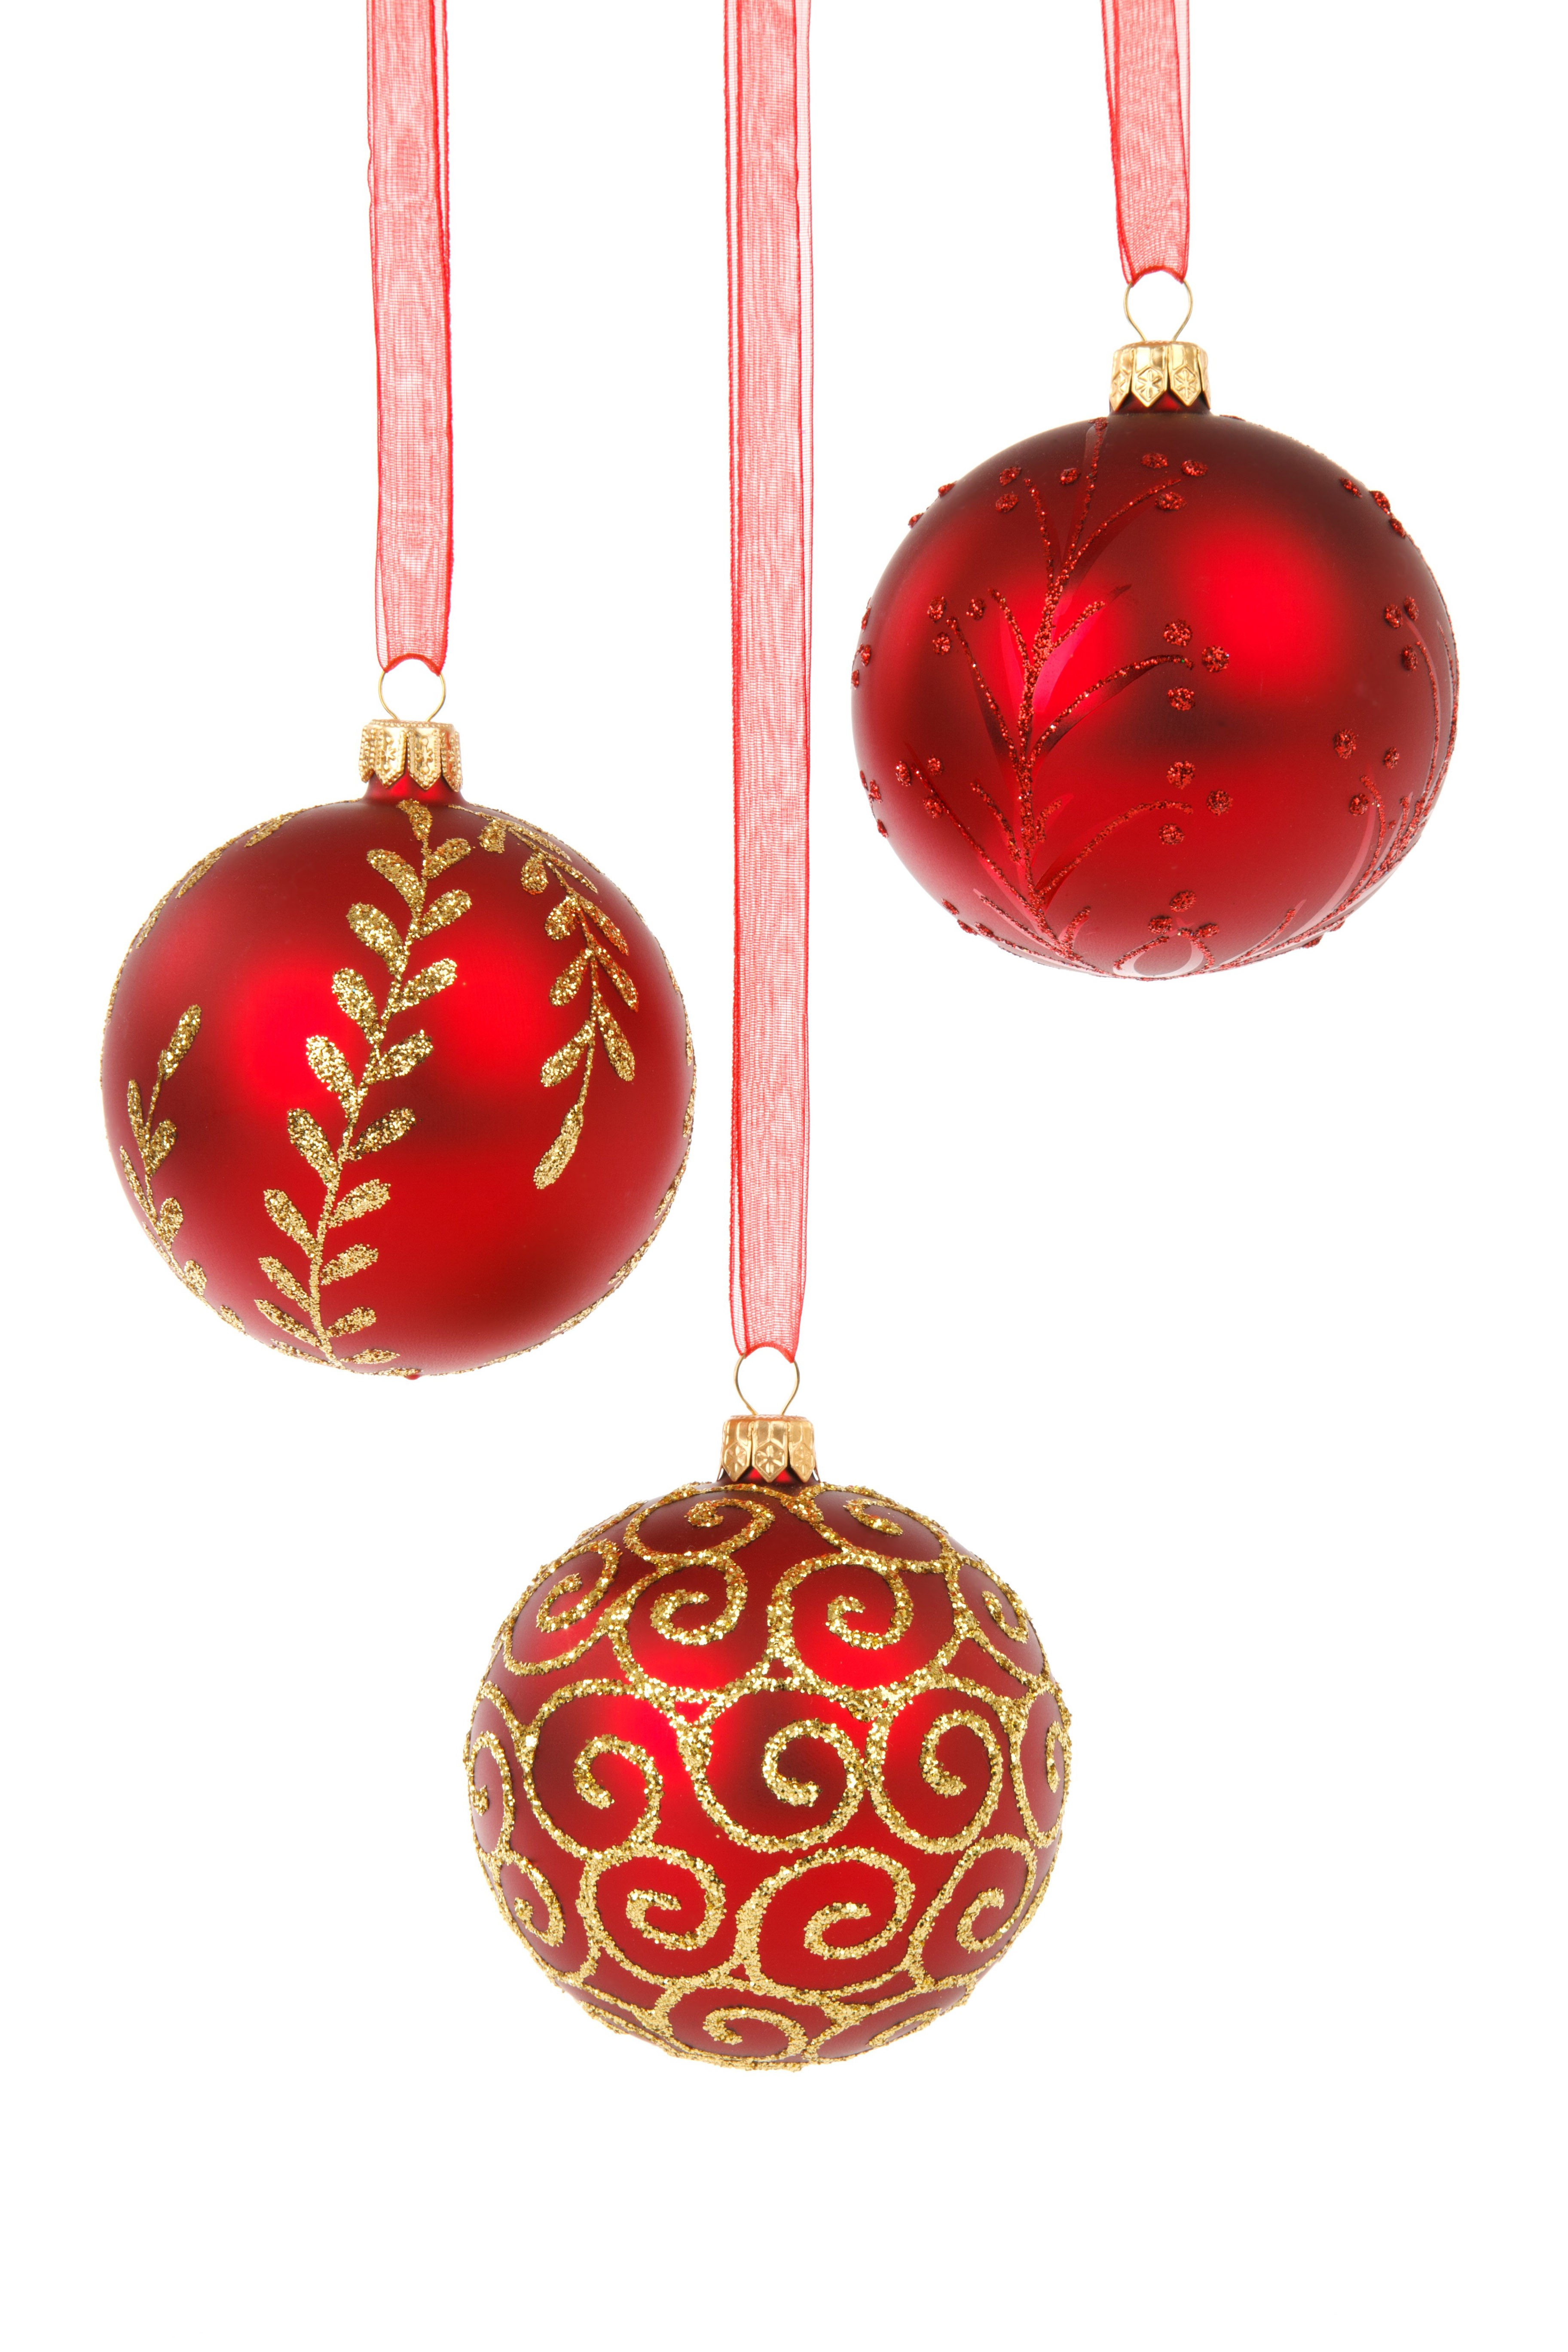 Christmas ornaments Lovely 15 assorted Christmas ornaments On A White Background Of Incredible 48 Images Christmas ornaments